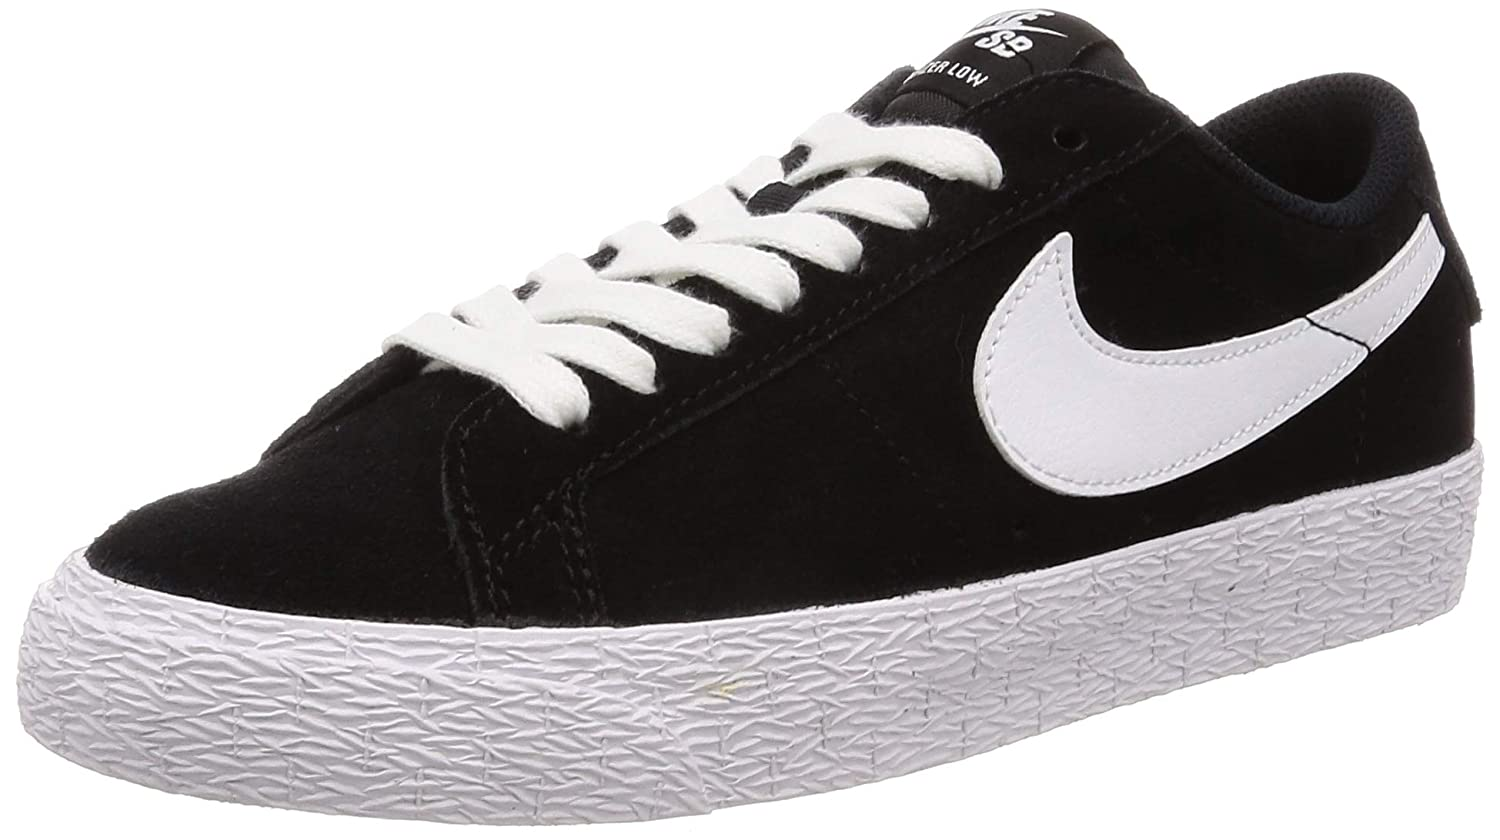 low priced 4606a 1ceb9 Nike SB Blazer Zoom Low - 864347-019: Amazon.ca: Shoes ...